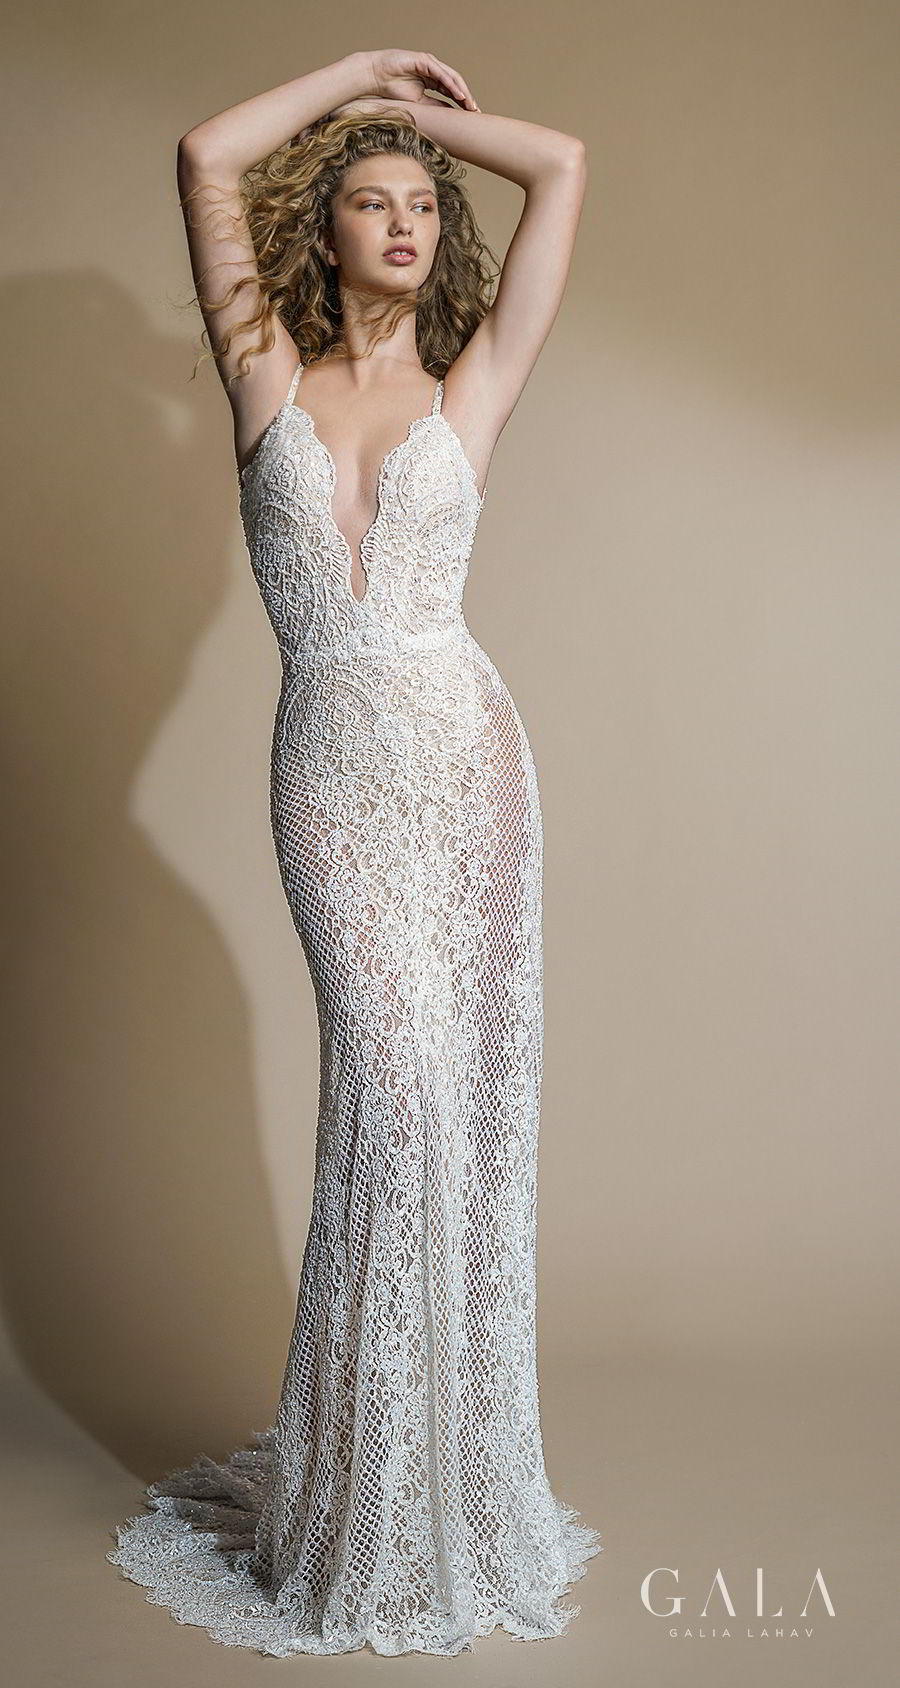 galia lahav gala 2019 bridal thin strap deep plunging v neckline full embellishment sexy elegant fit and flare sheath wedding dress low open back sweep train (105) mv